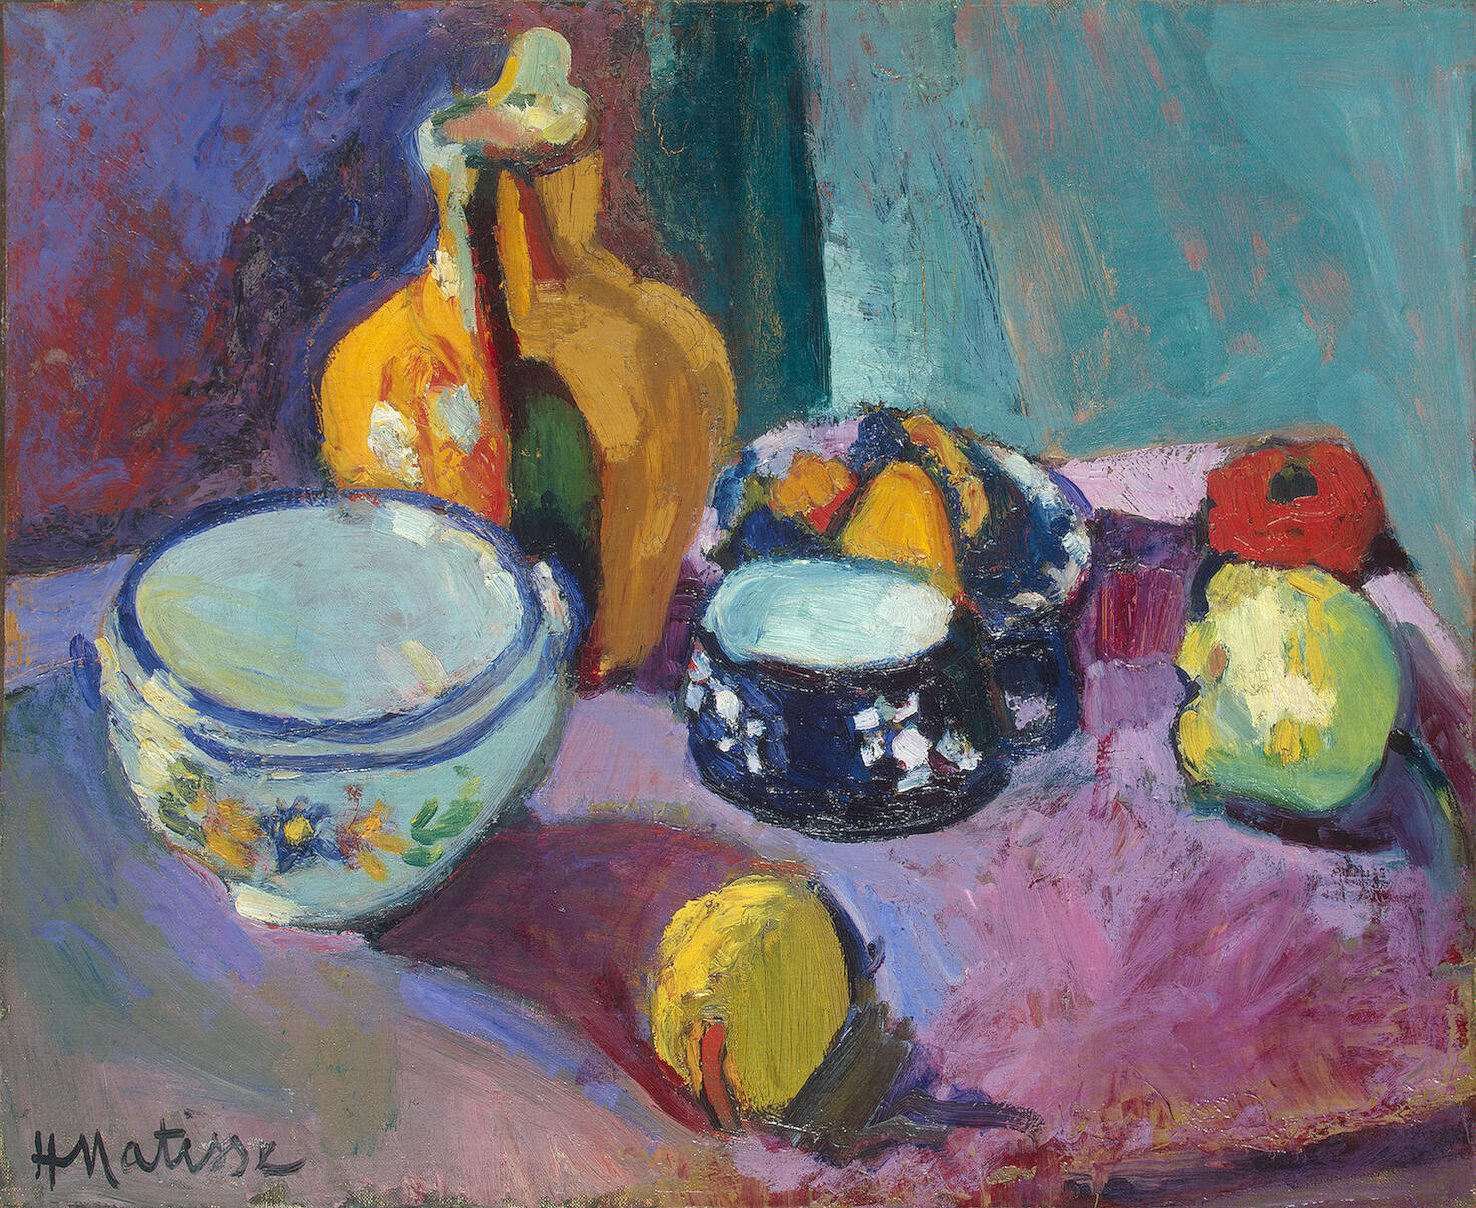 Matisse - Dishes and Fruit - 1901